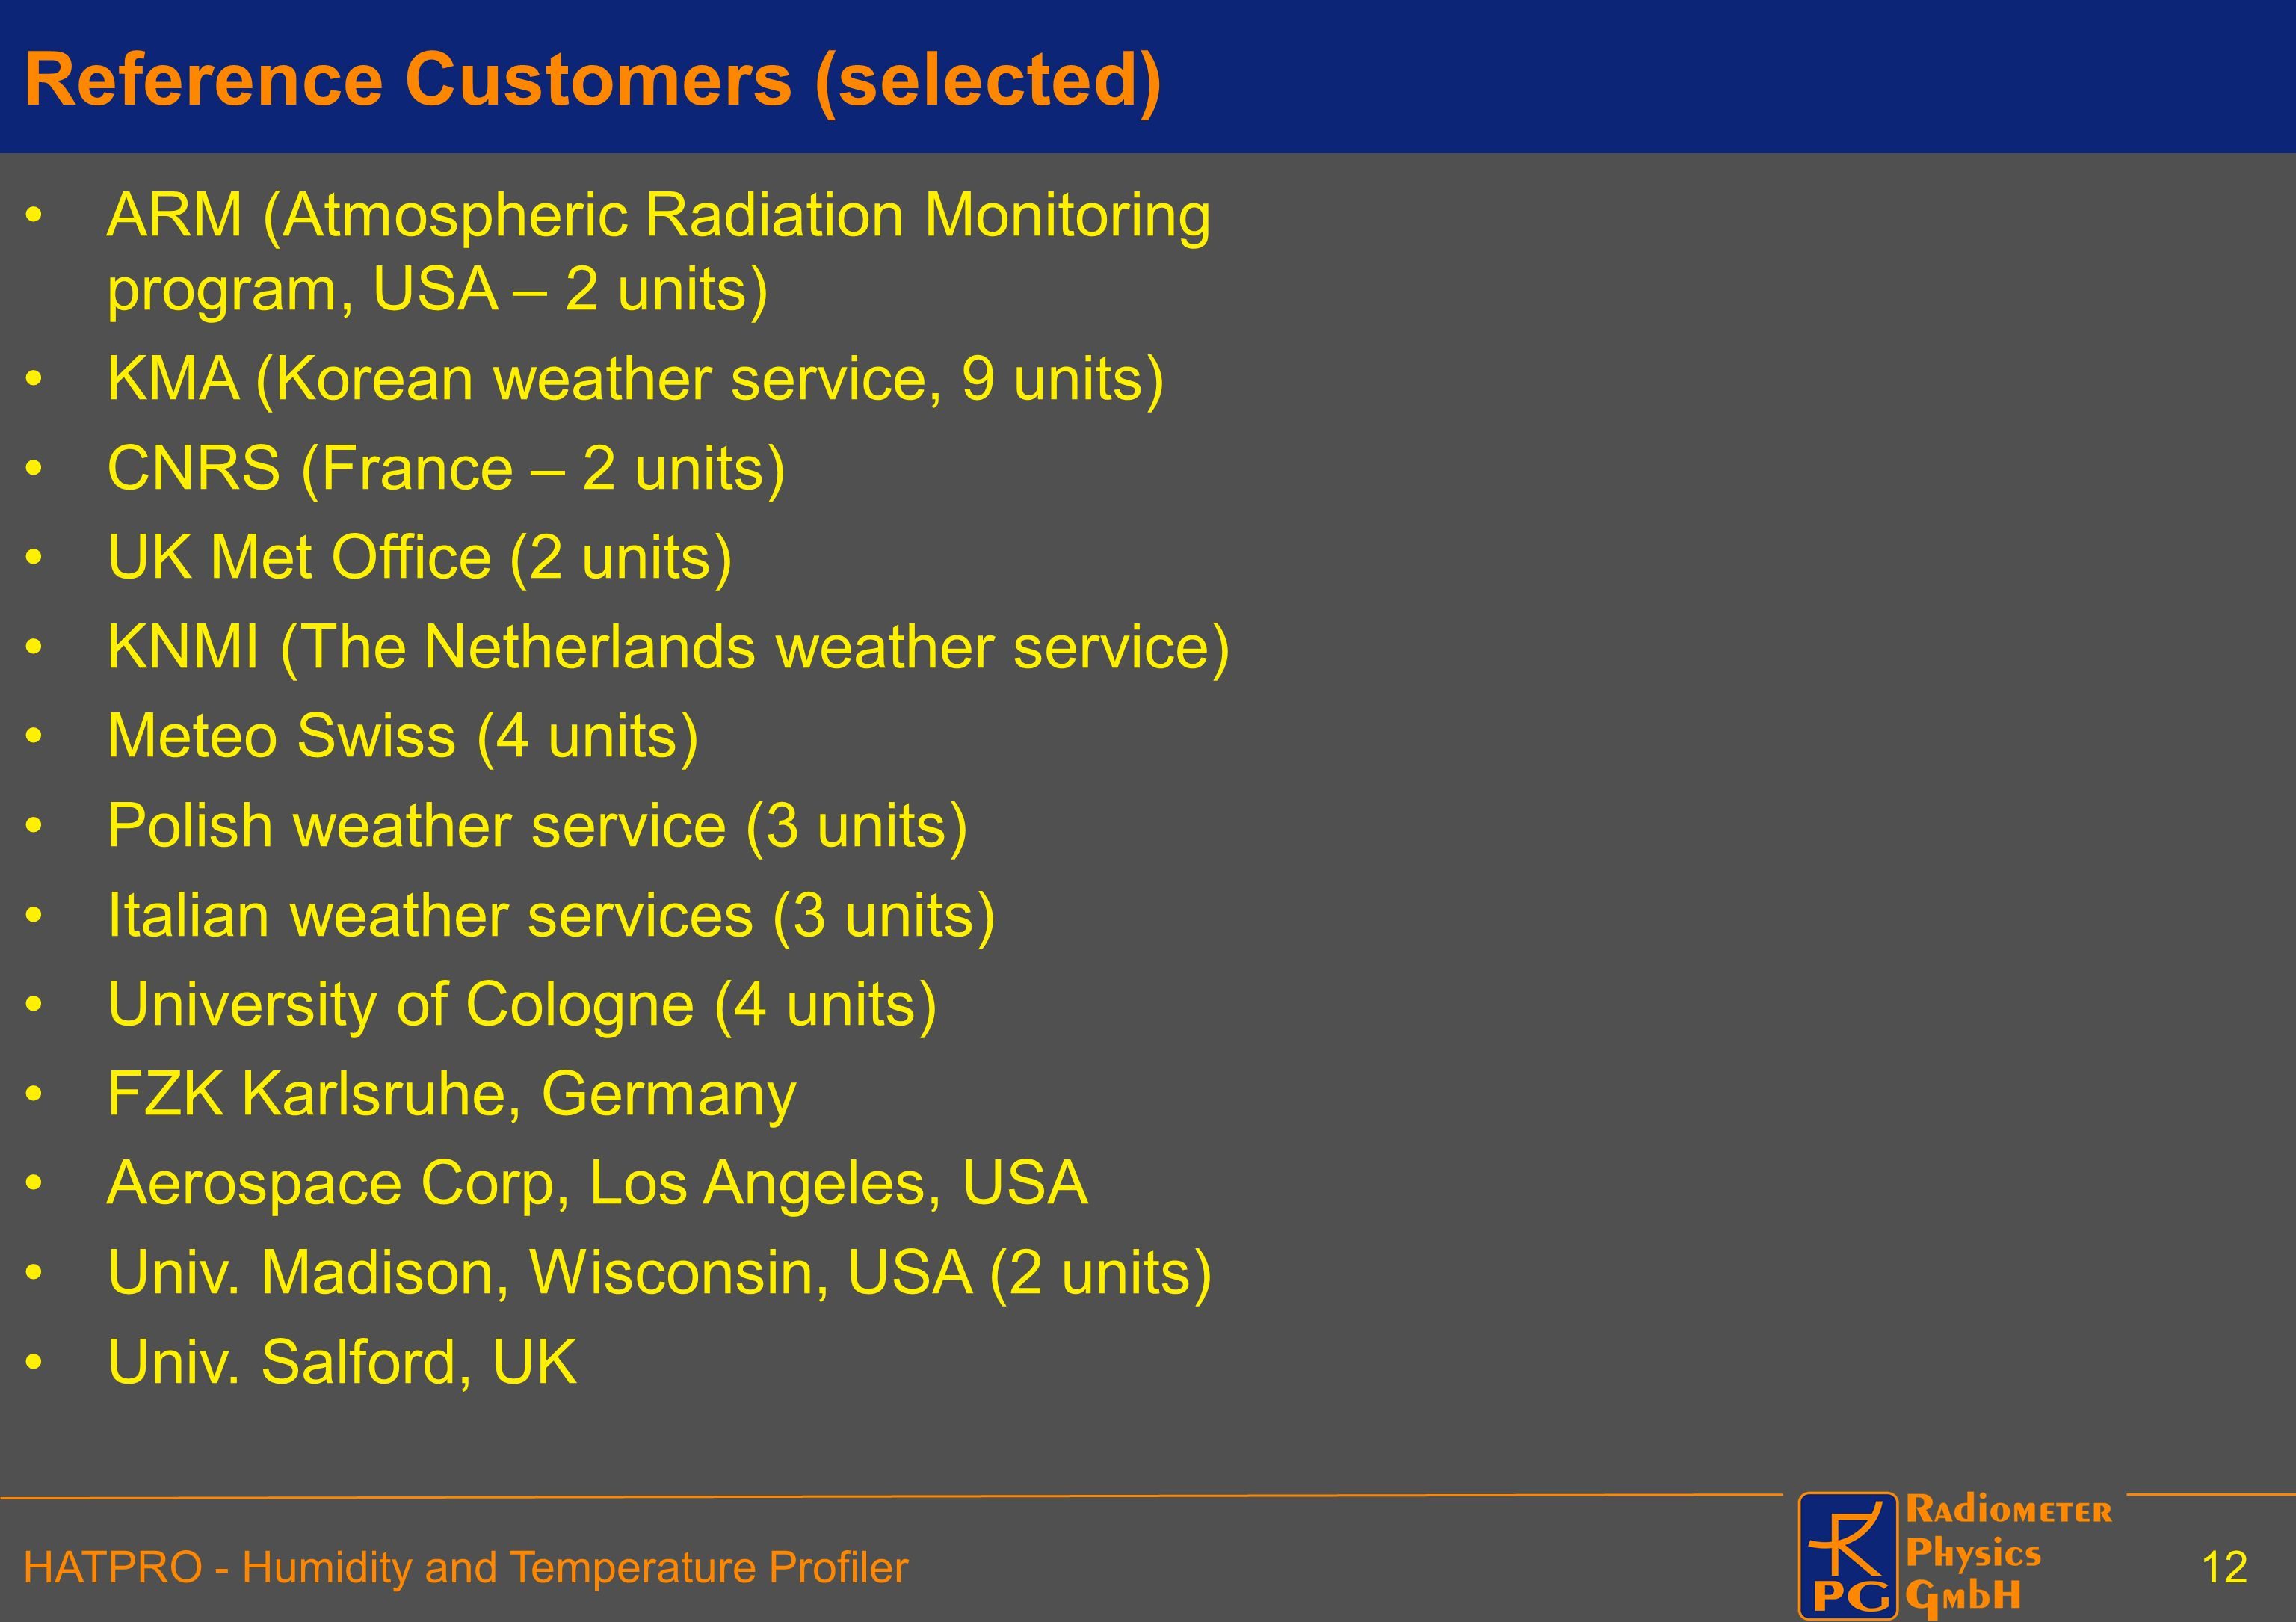 Reference Customers (selected)